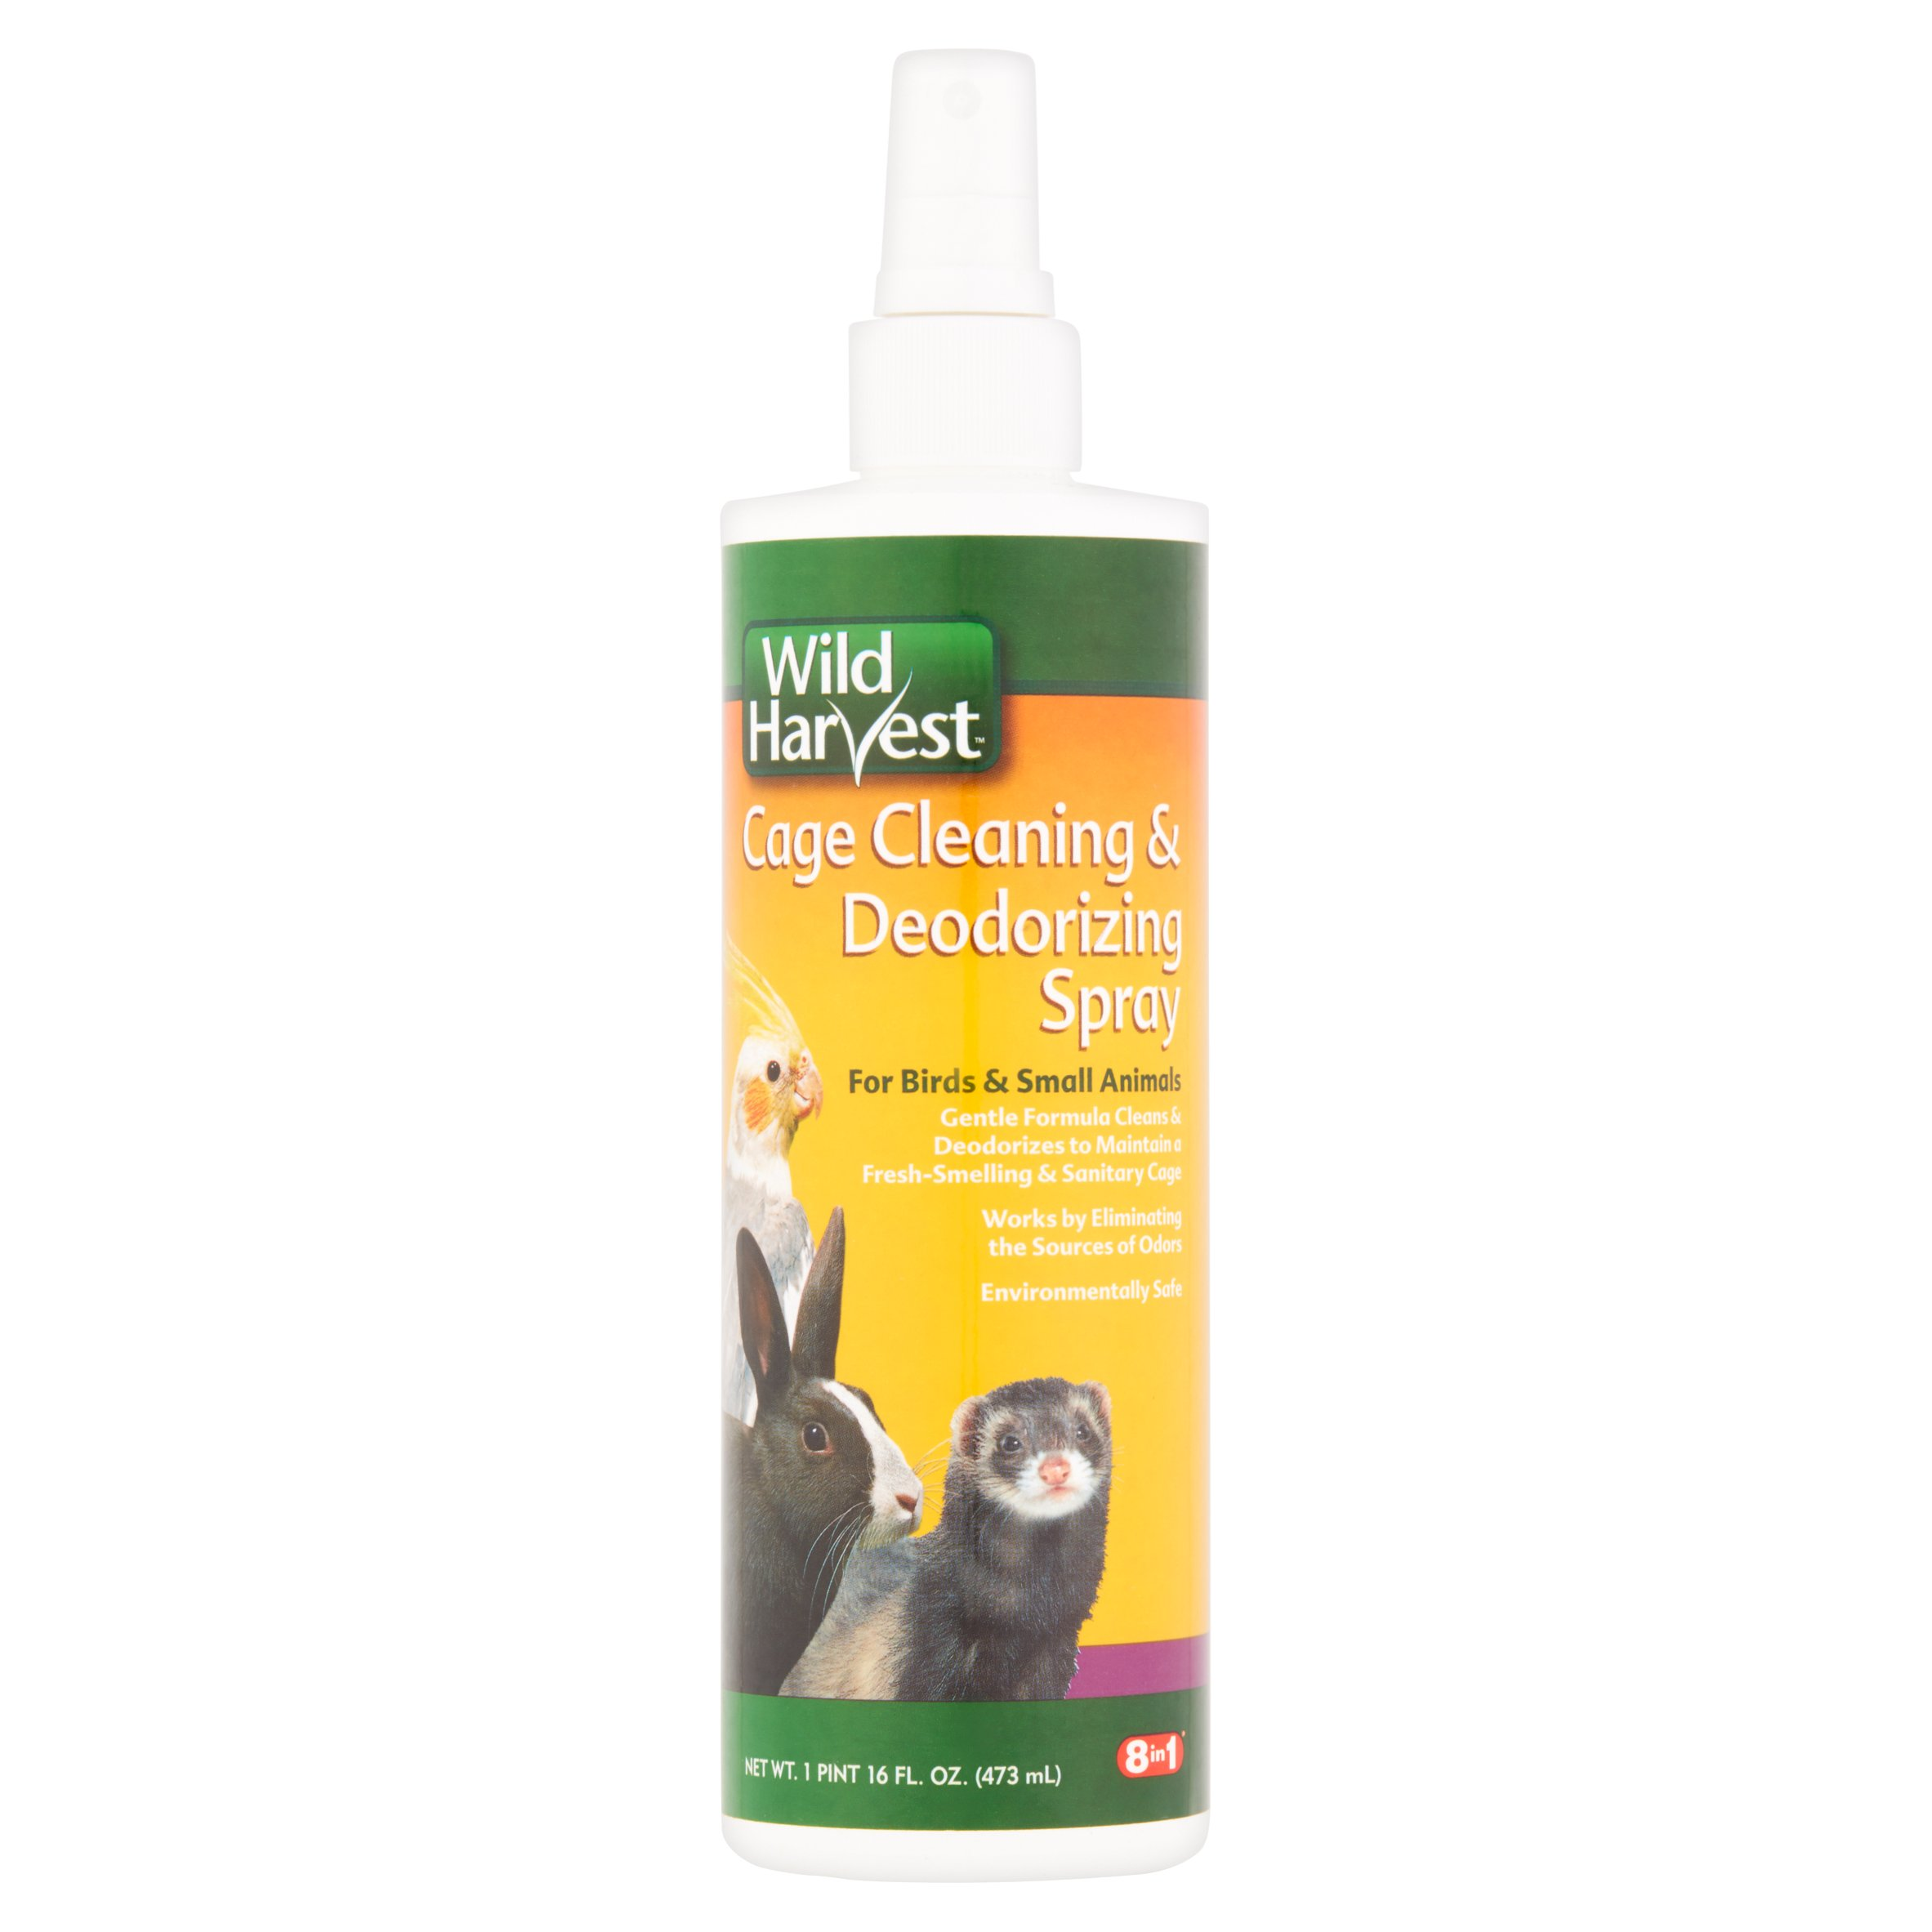 Wild Harvest Cage Cleaning & Deodorizing Spray, 16oz